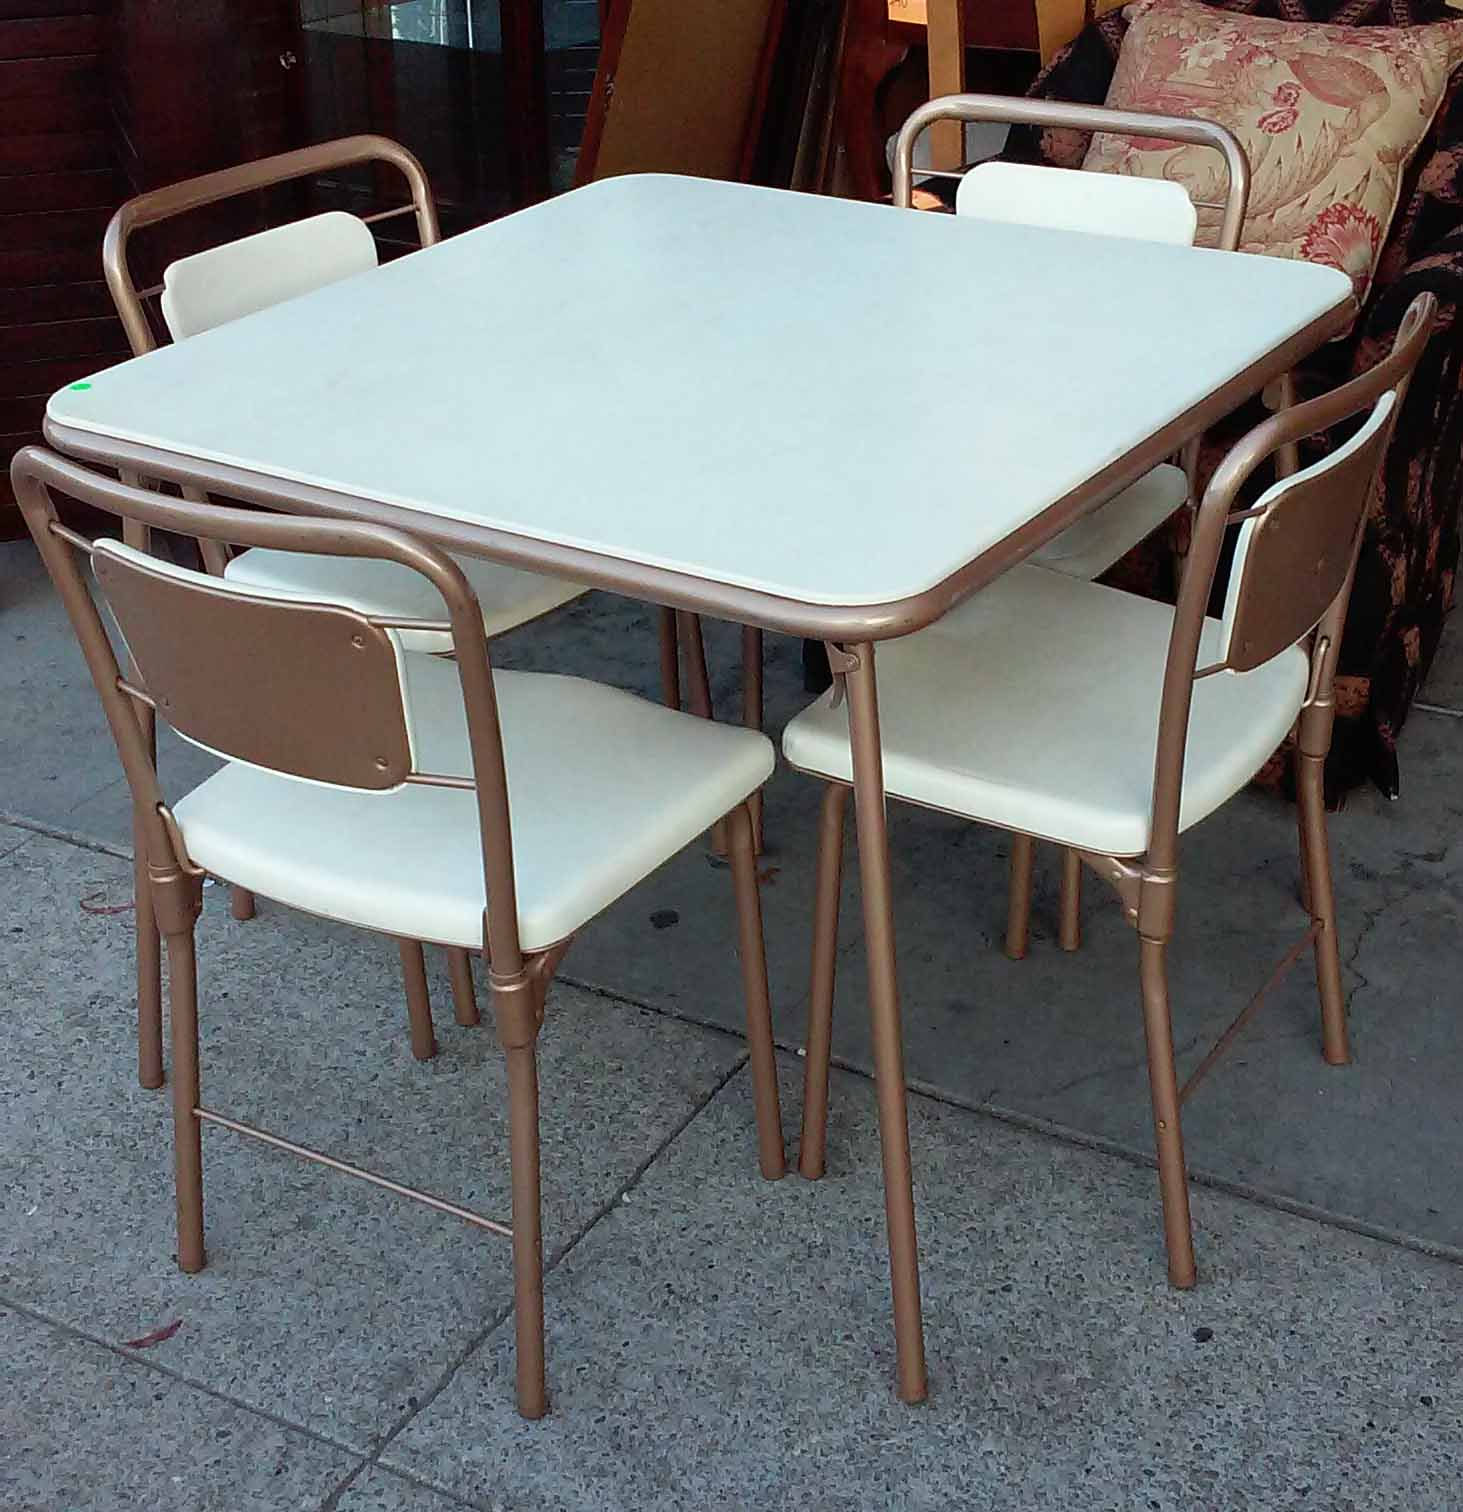 UHURU FURNITURE & COLLECTIBLES SOLD Cosco Folding Table and 4 Chair Set